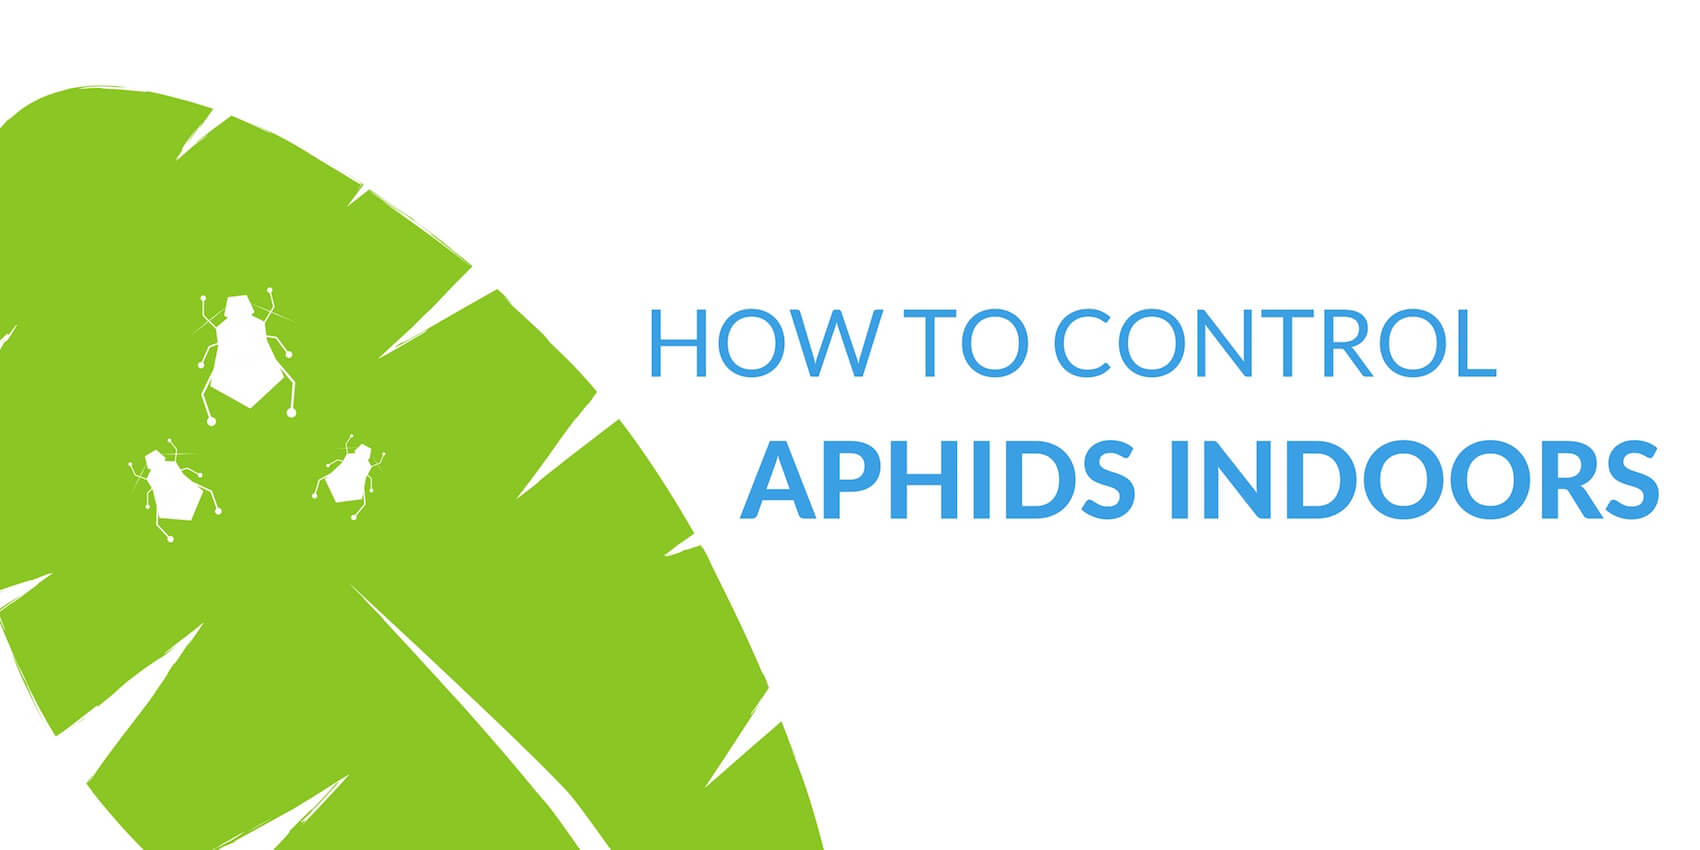 Aphids on Indoor Plants: How to Control Garden Pests Inside